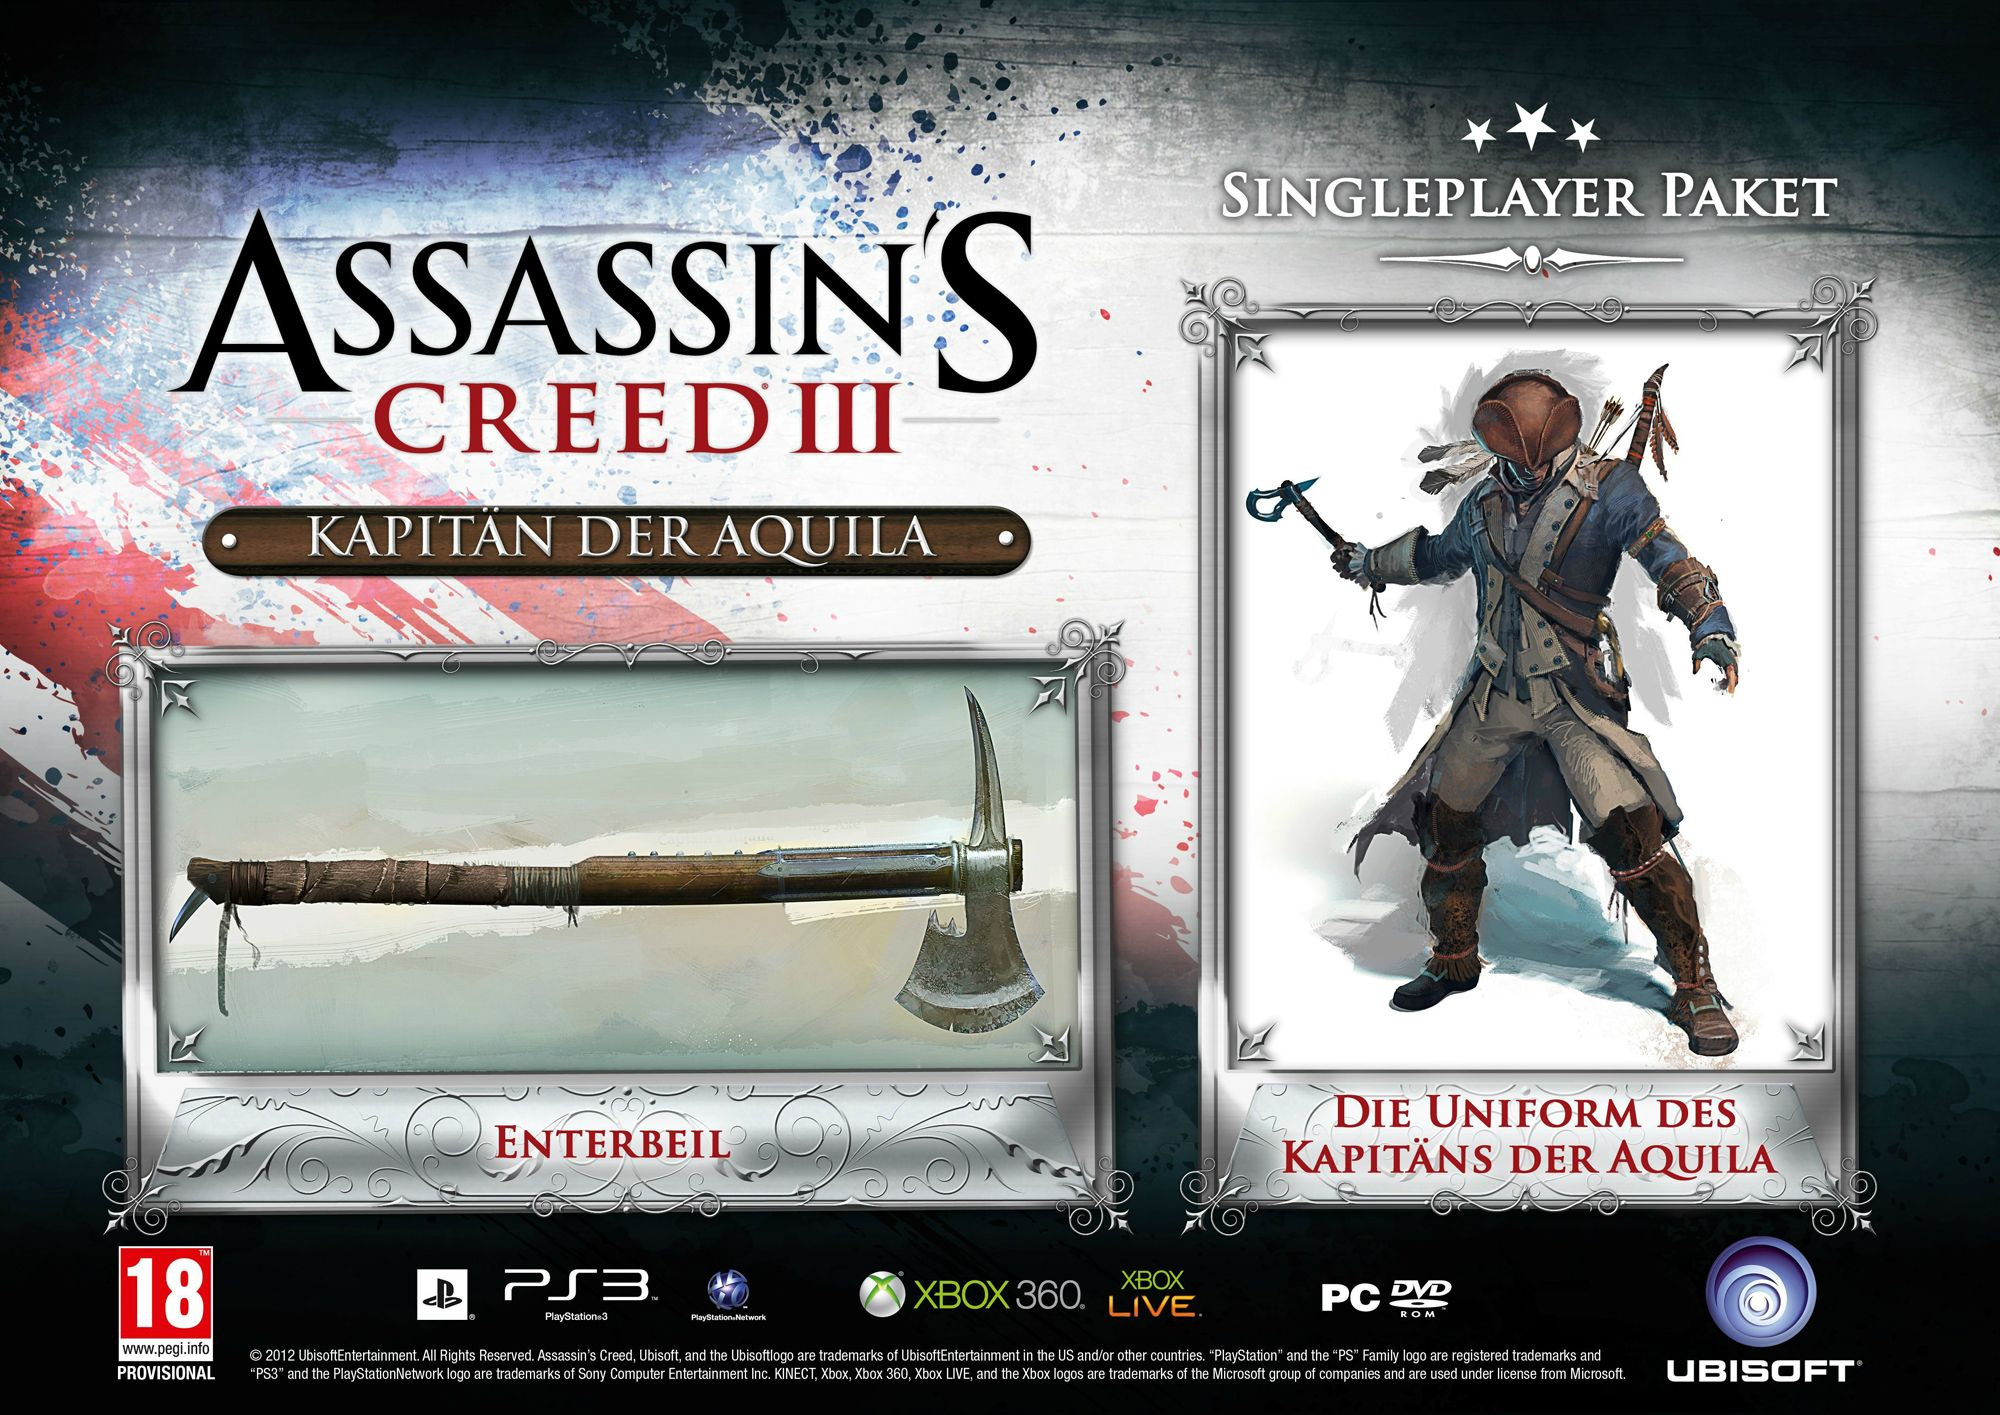 assassinscreed3 dlc exclusif preco 2 Assassin's Creed 3 : Des bonus de précommande en Allemagne  precommande Assassin's Creed 3